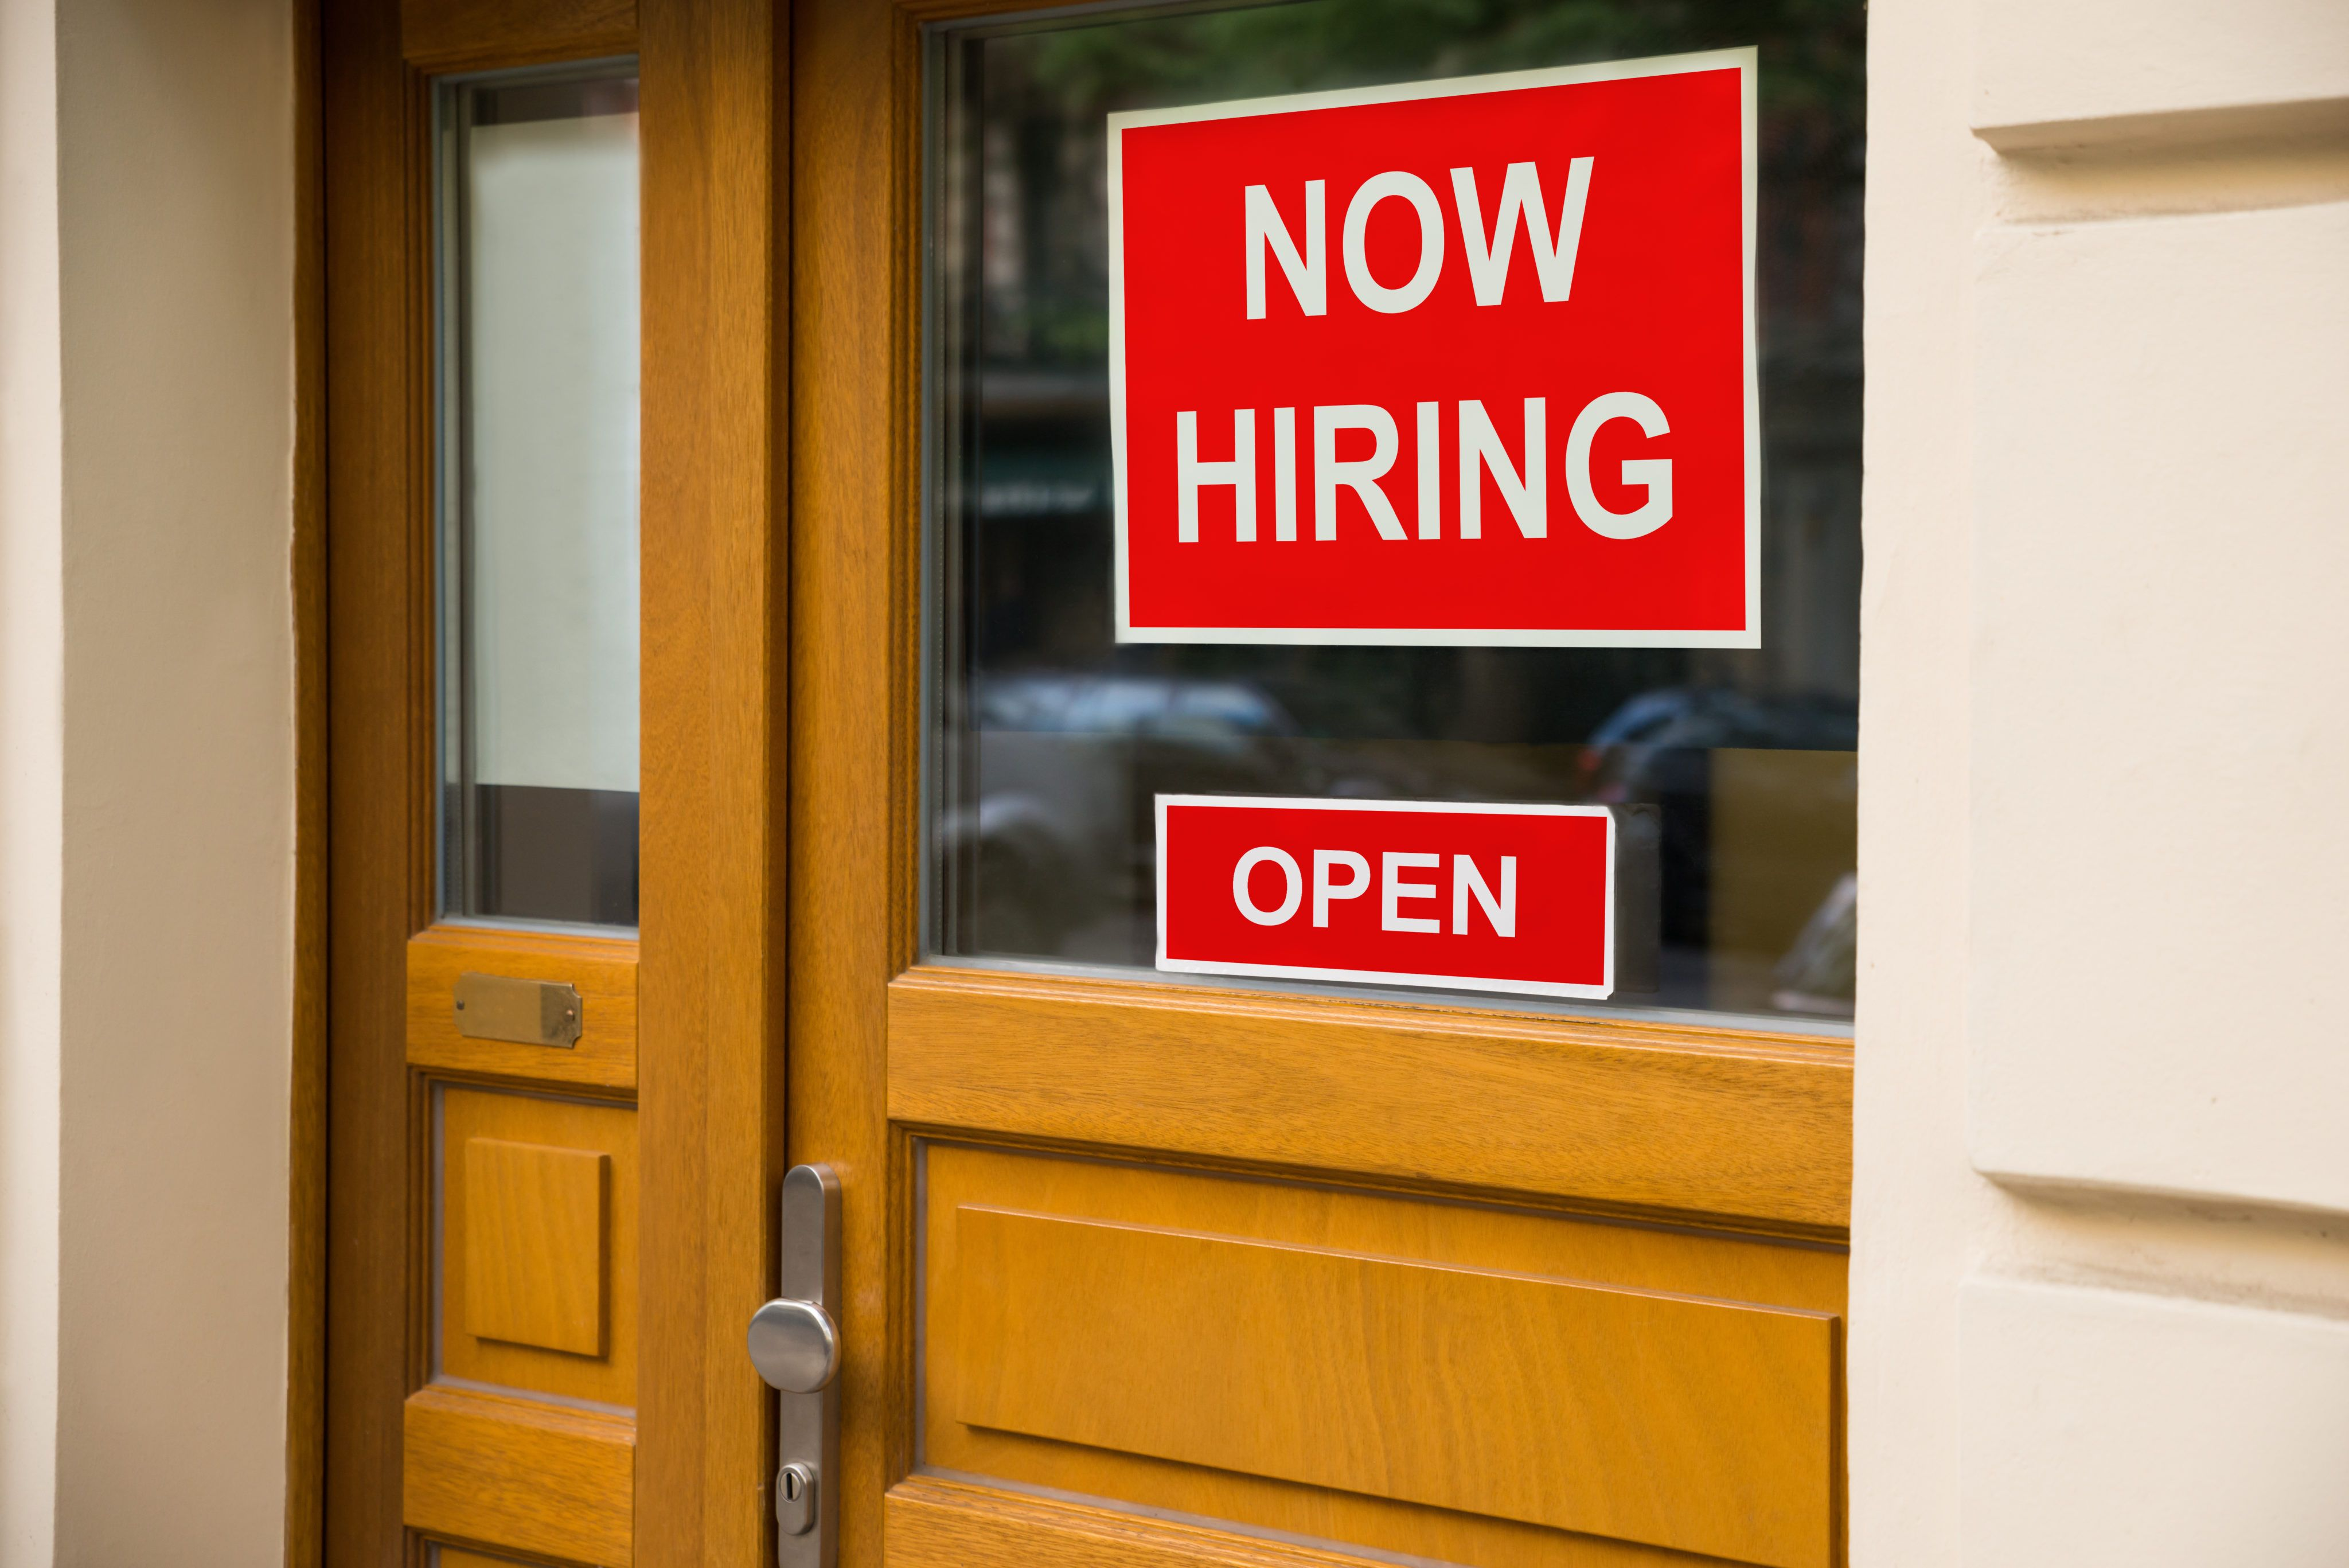 15 Employers Offering Thousands of Jobs That Pay 100,000